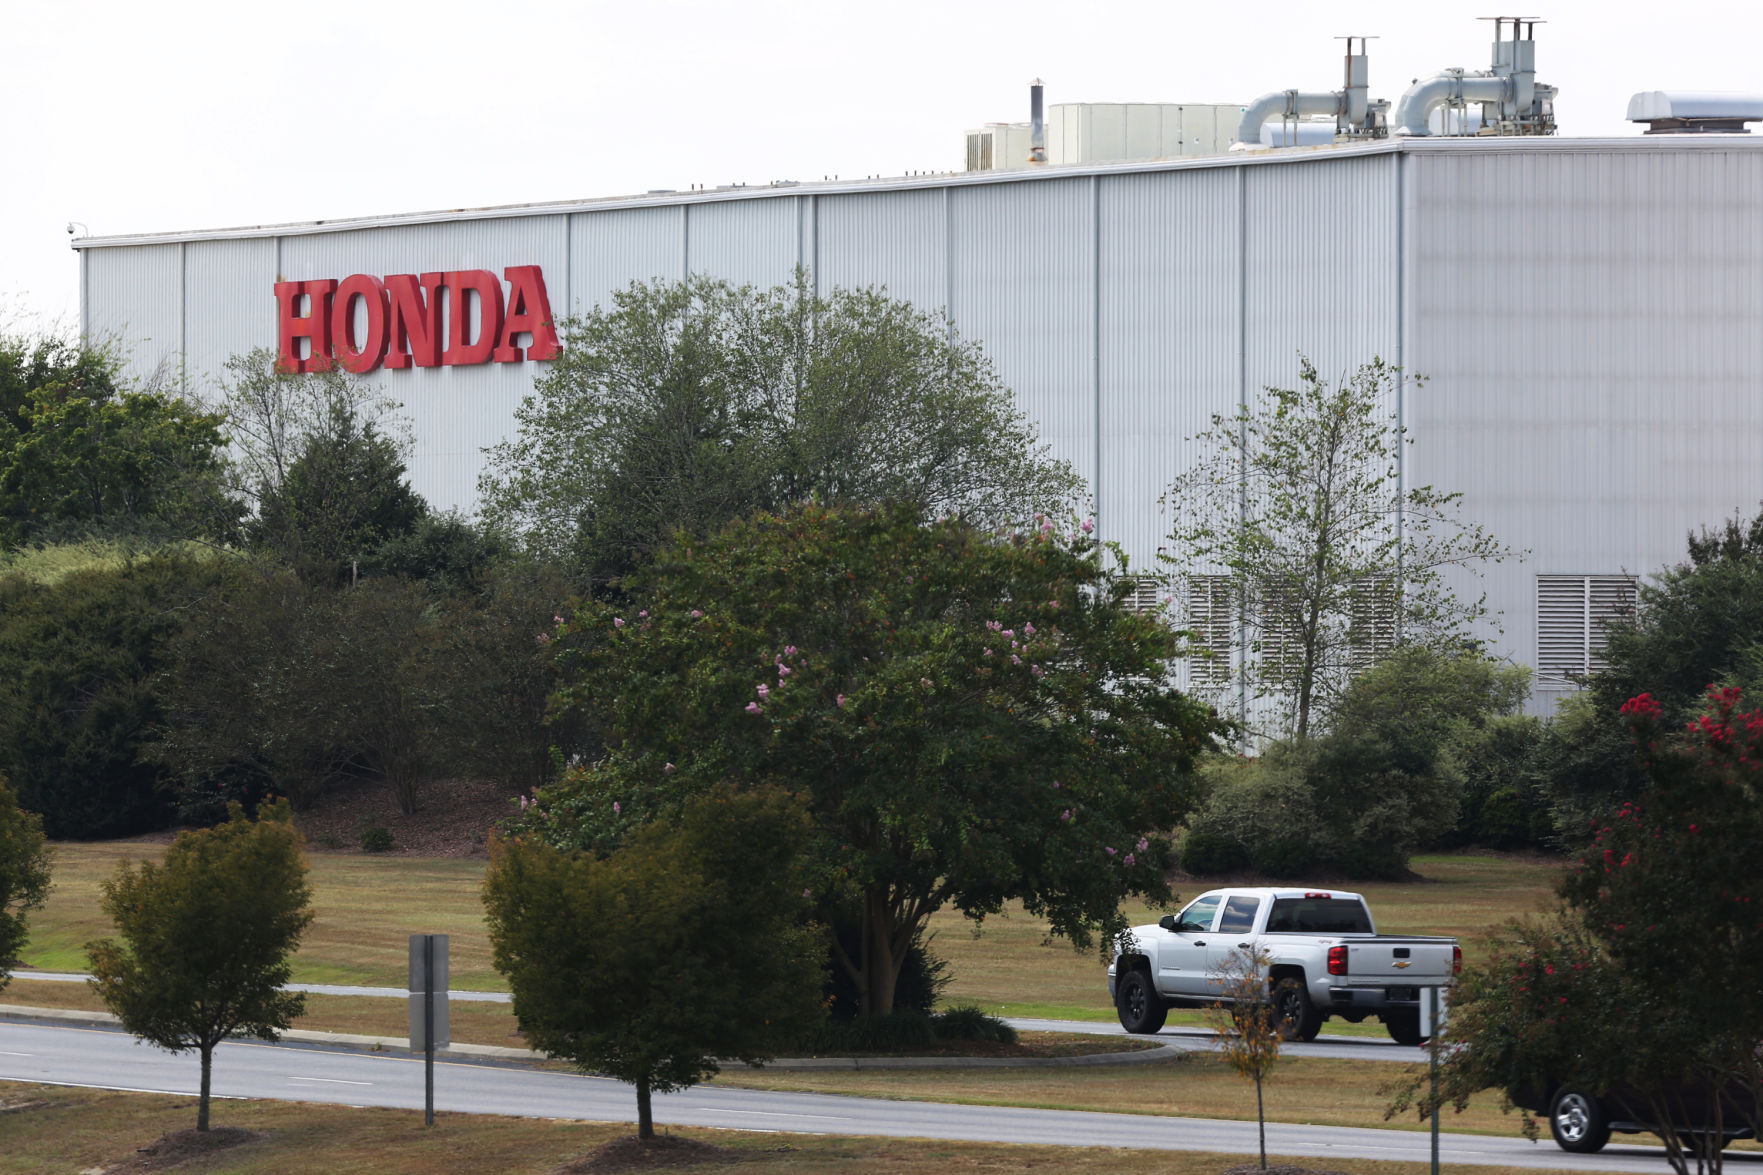 Honda Of South Carolina Announces $45 Million Expansion In Timmonsville